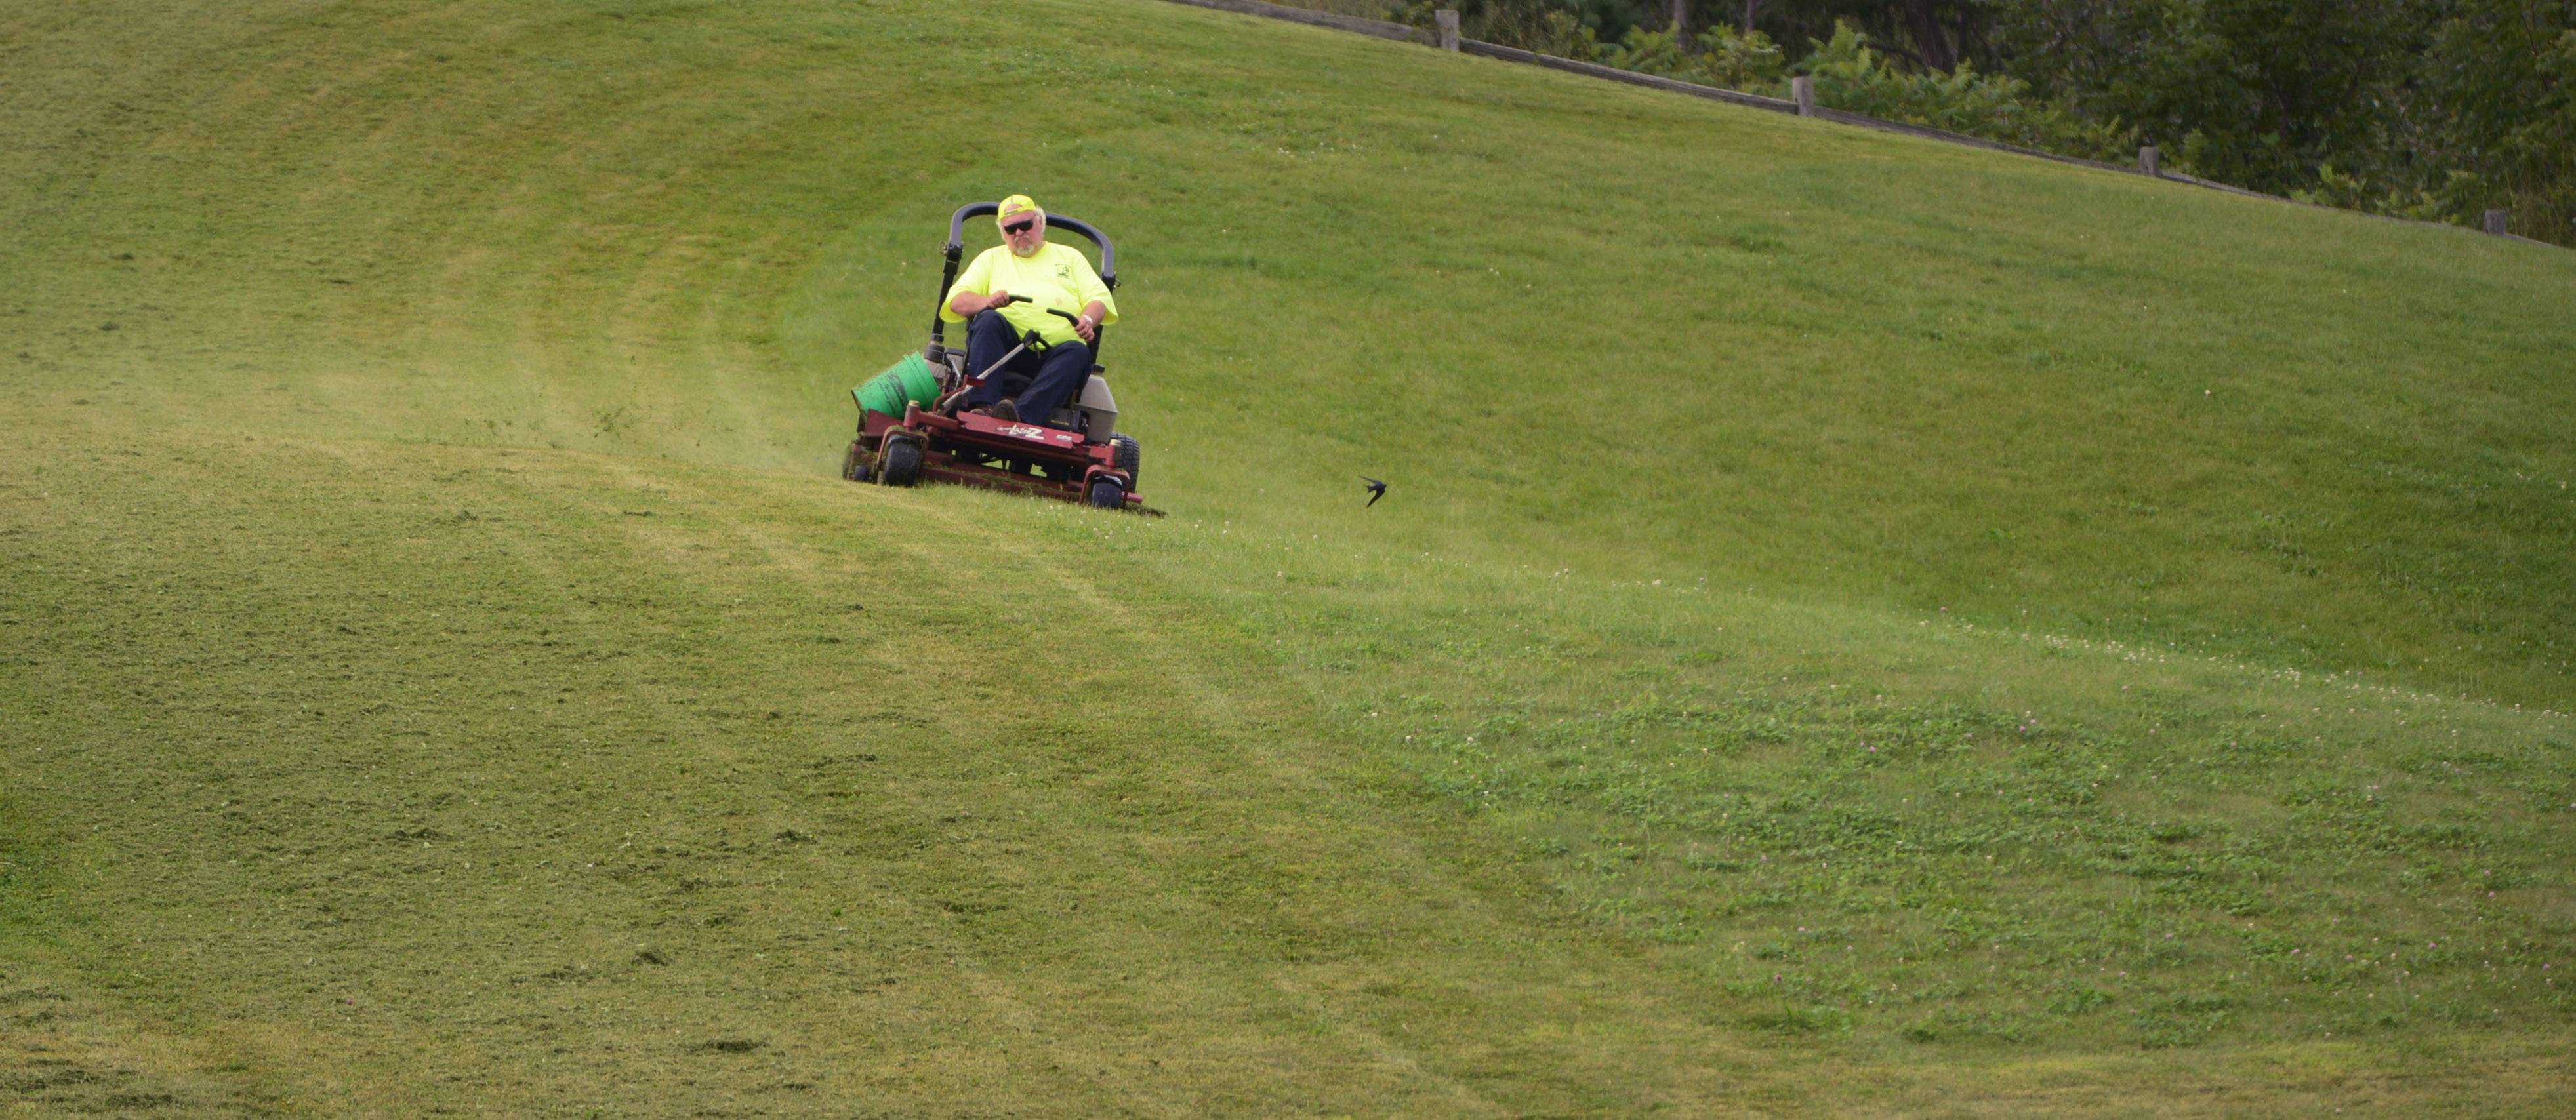 Island Lake Public Works crews cut the grass at Converse Park once a week. Worker Tom Benson hits the sledding hill as fellow workers cut the grass below.